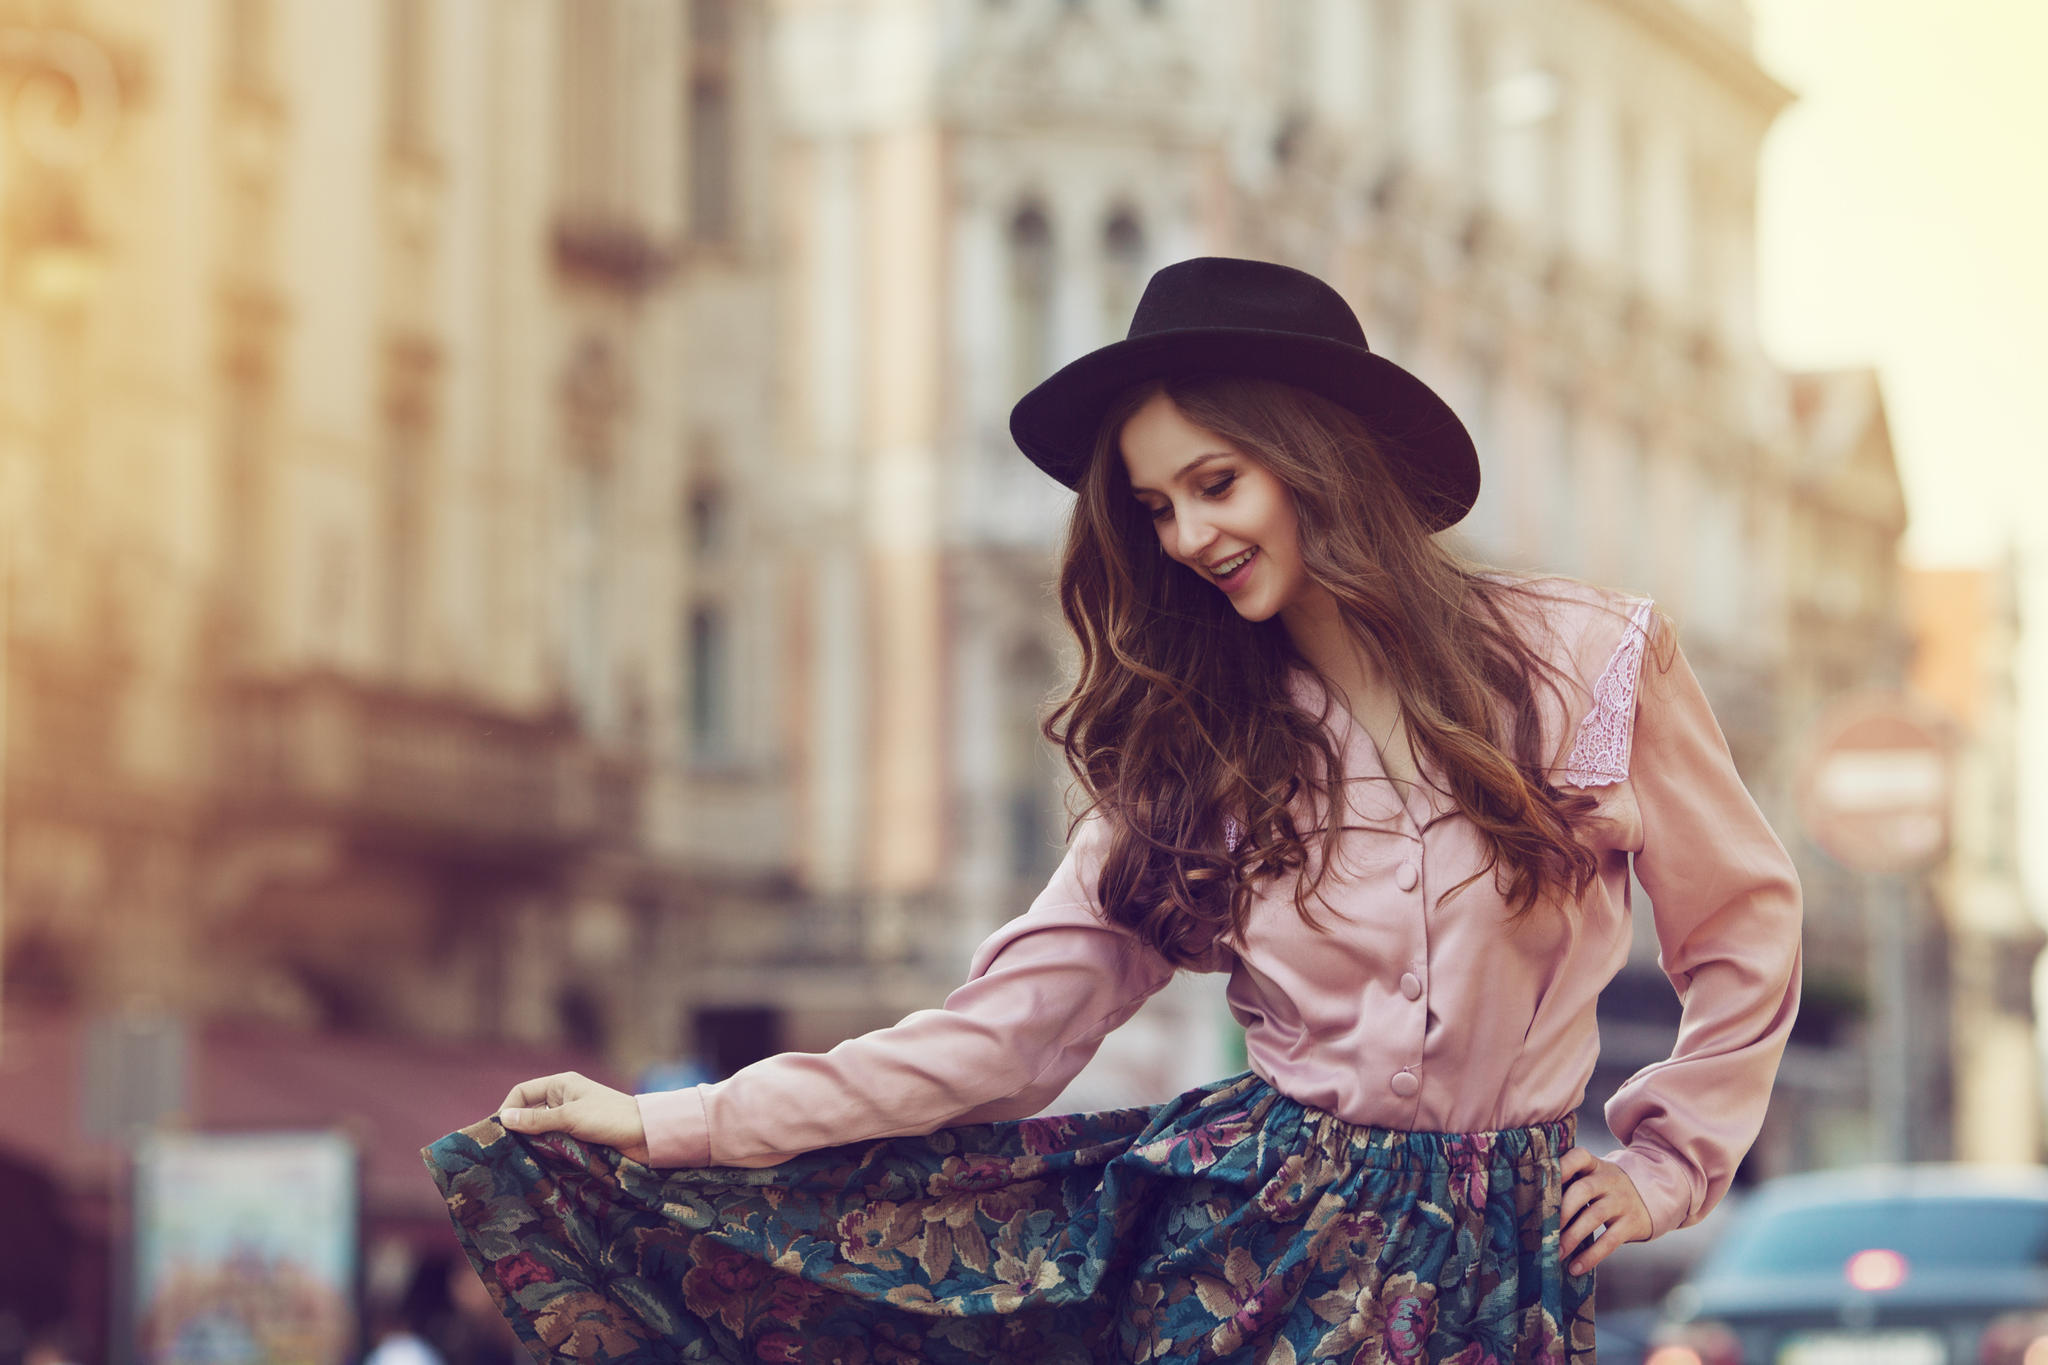 Stylish Girl With Guitar Wallpapers Nie Wieder Billig Aussehen 6 Tipps F 252 Rs Outfit Brigitte De